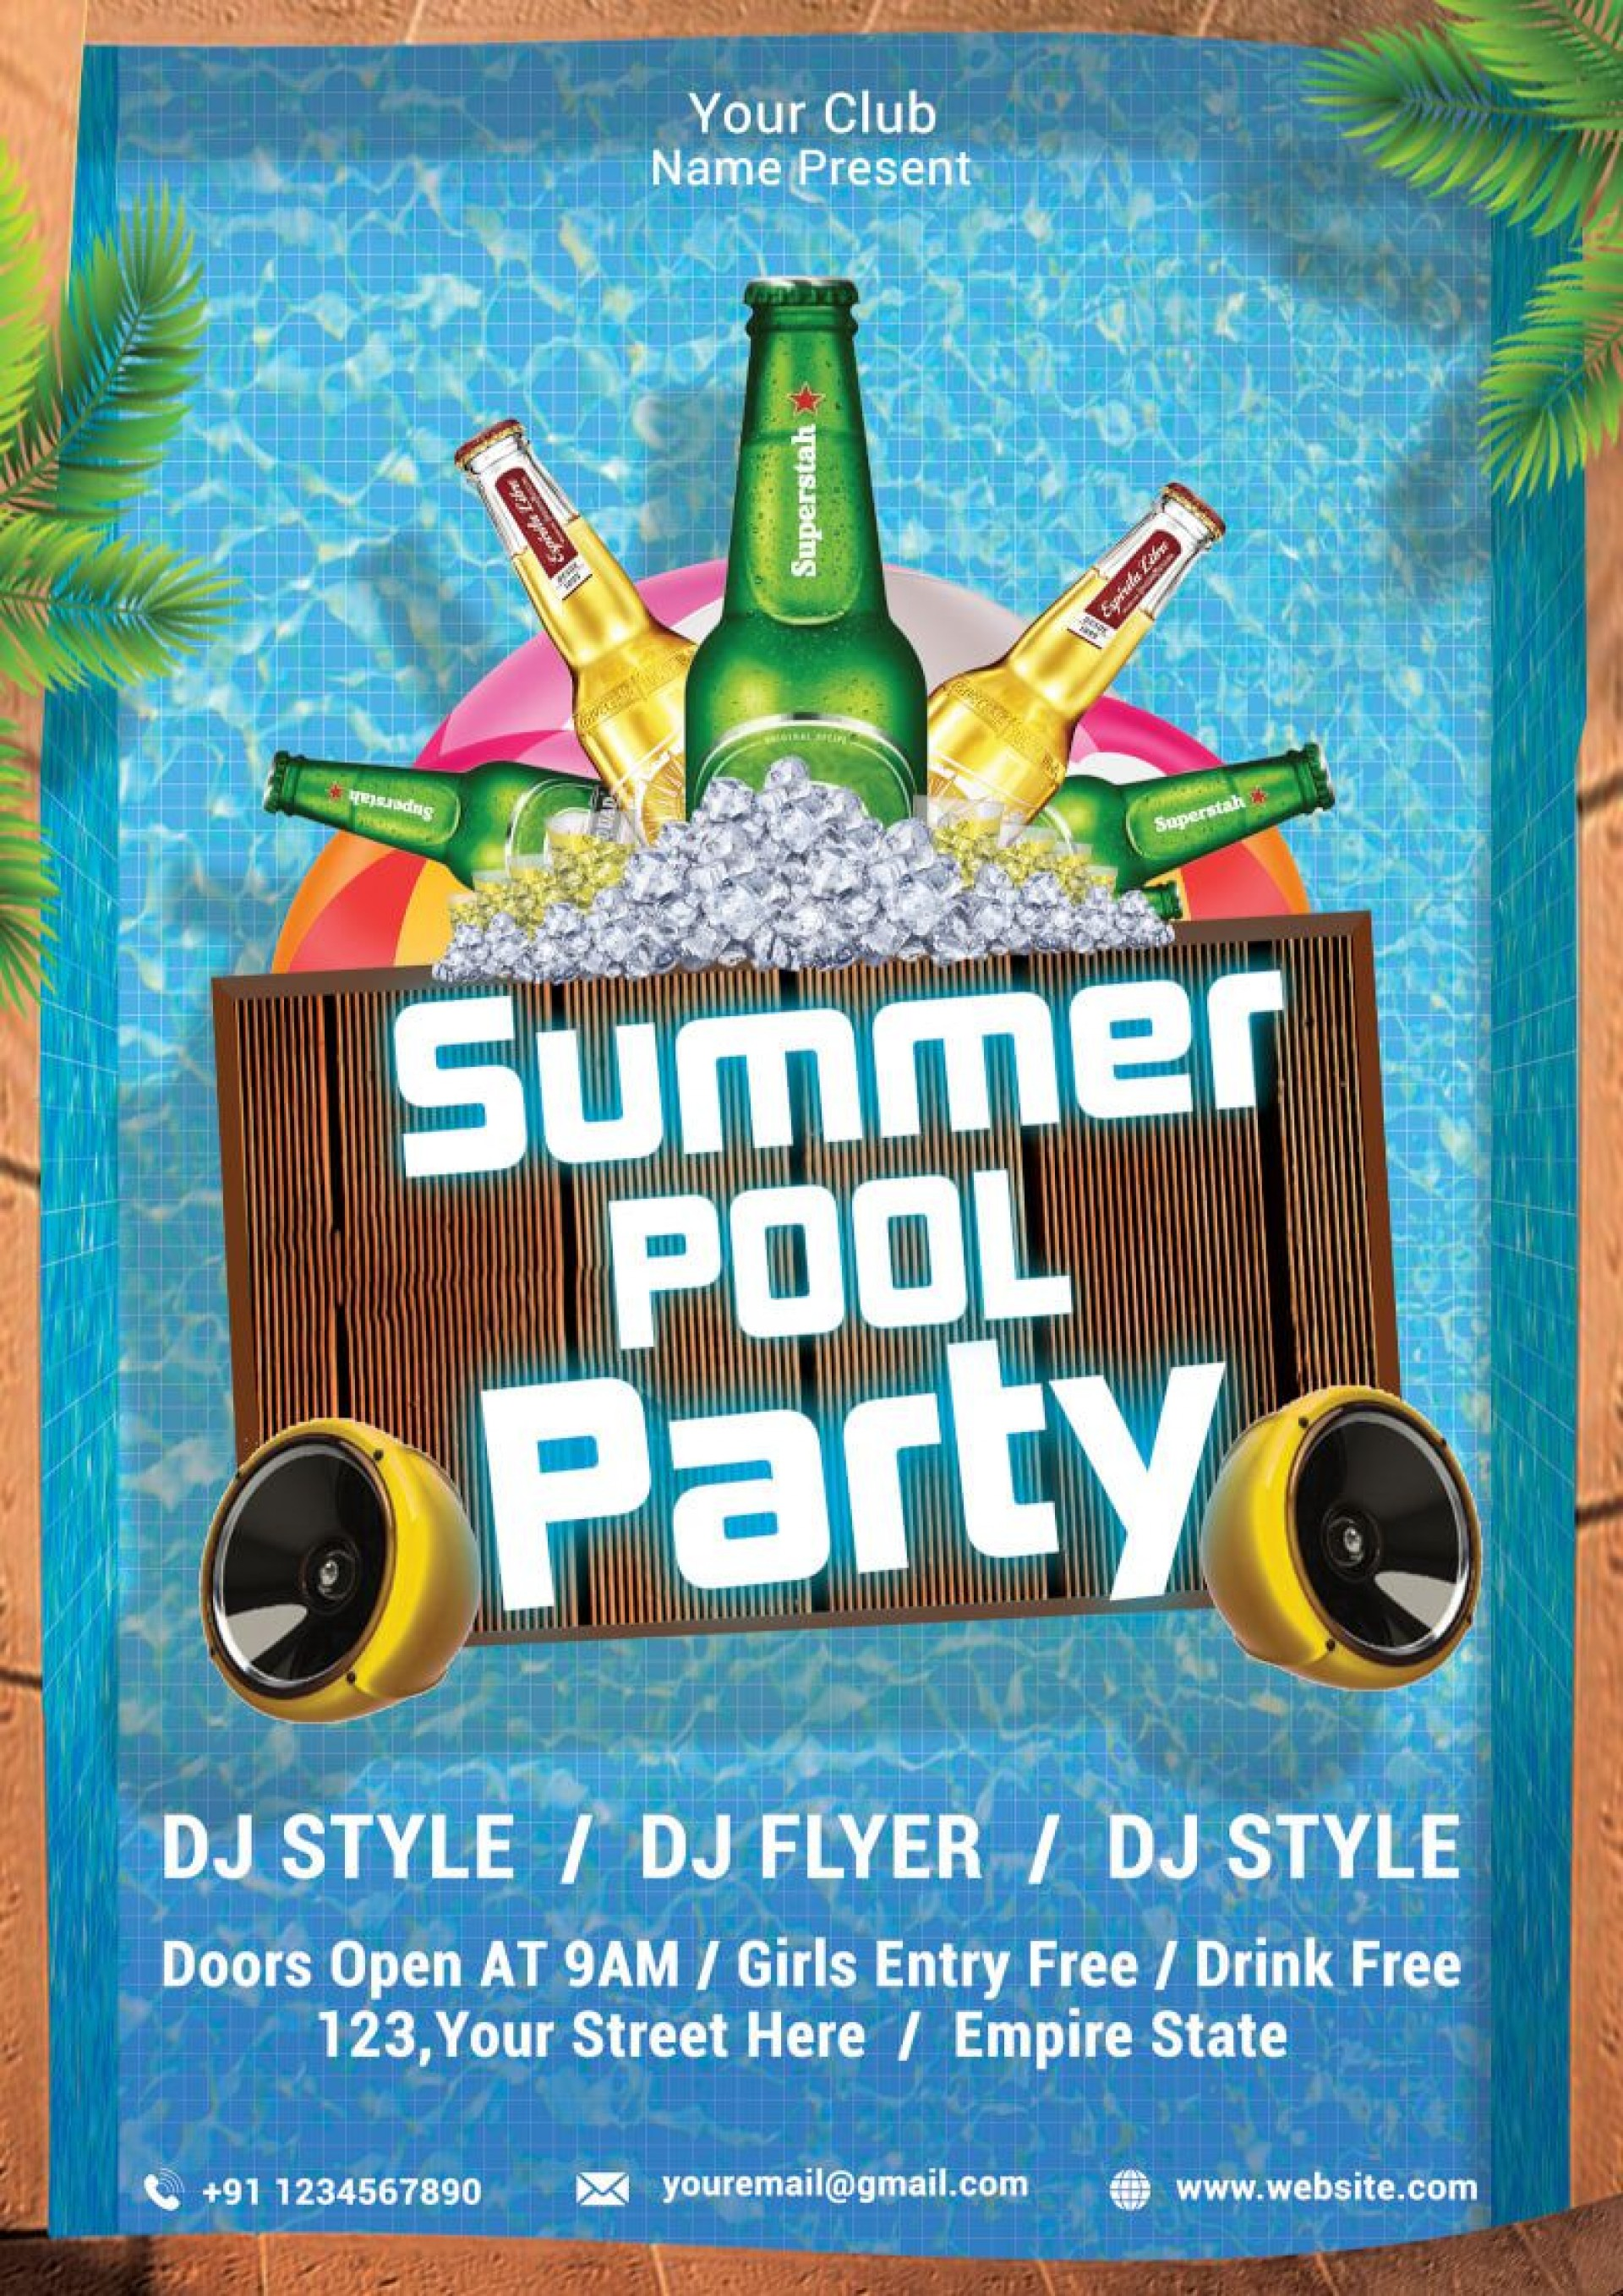 013 Simple Pool Party Flyer Template Free Sample  Photoshop Psd1920